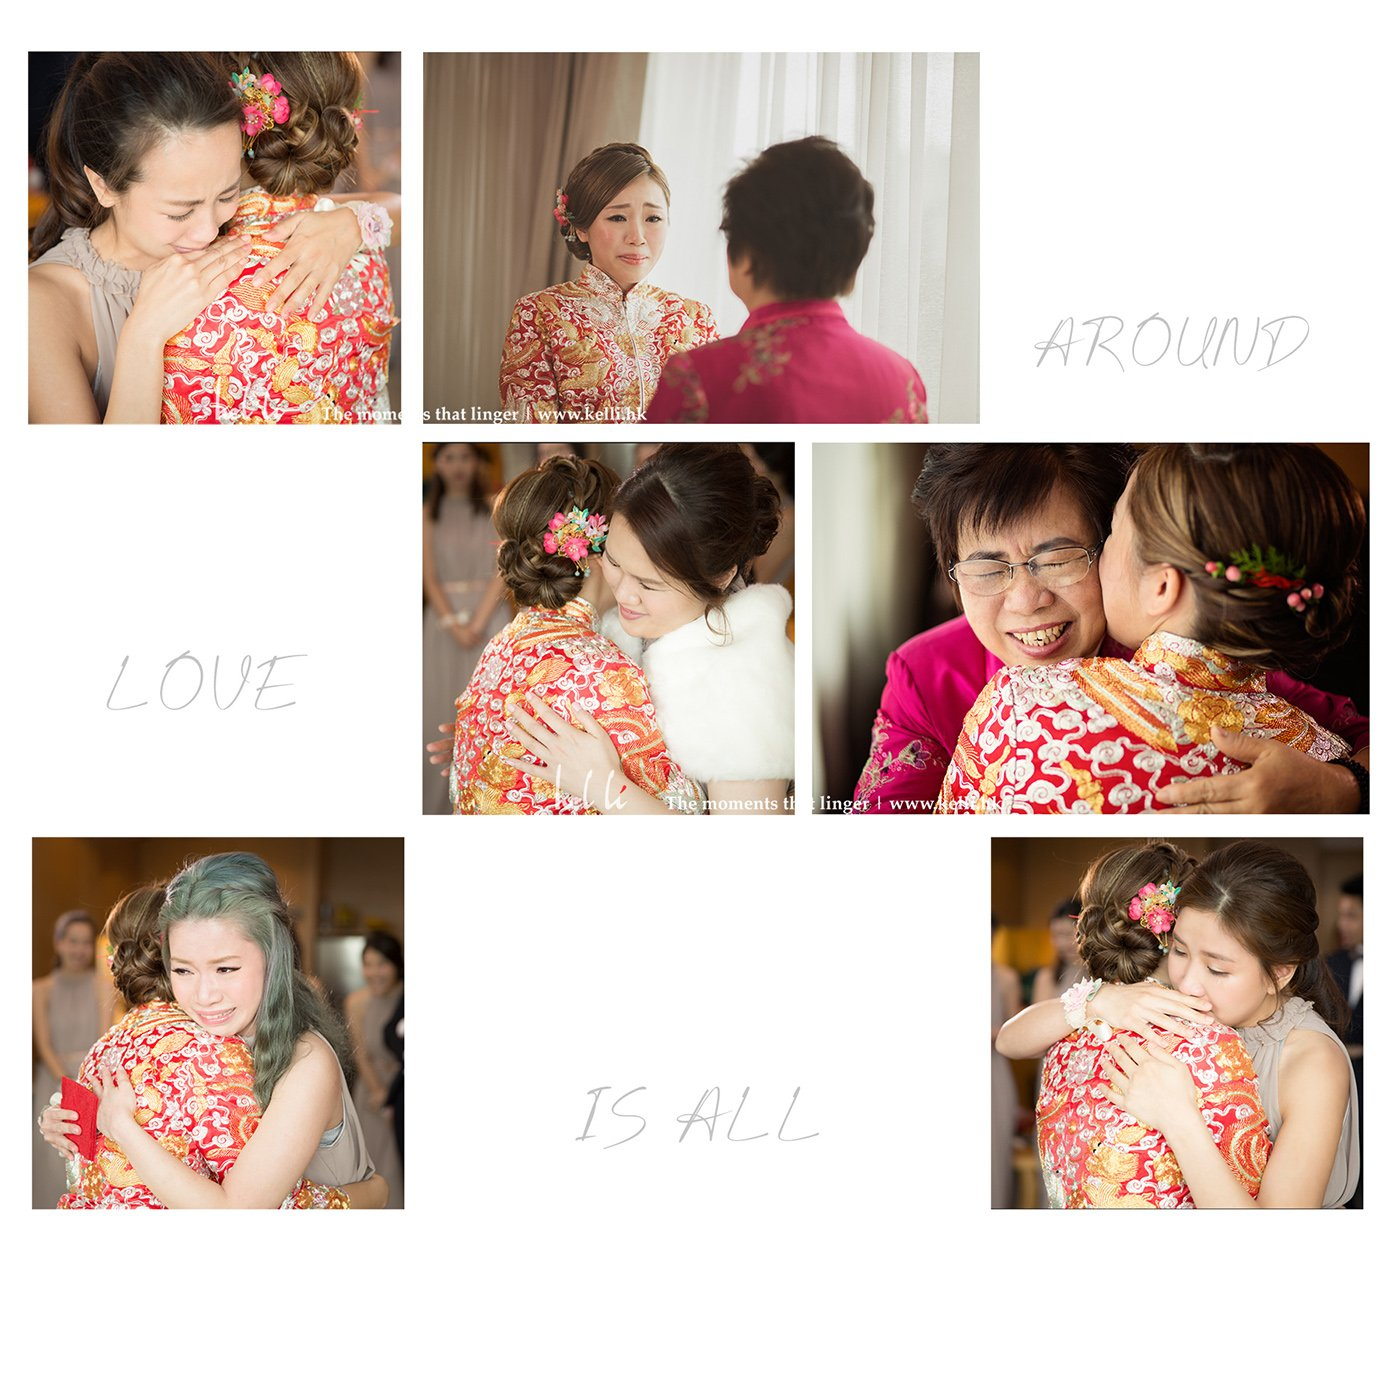 Kel Li Art Gallery - Love is all around - wedding day